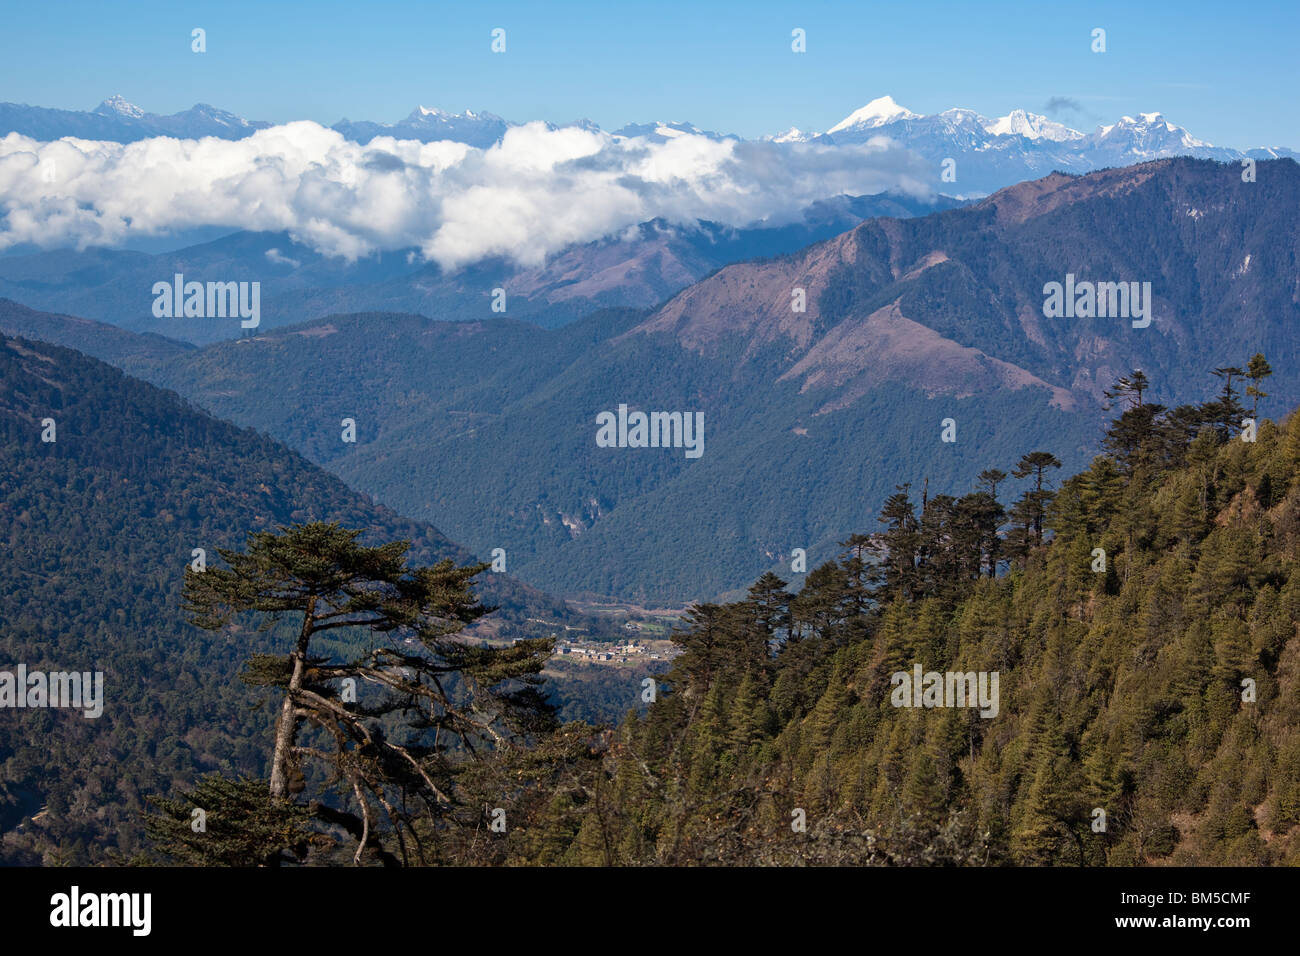 Bhutanese Himalaya scenery as seen from the Pele La pass with Gangkar Puensum on the right, Bhutan - Stock Image